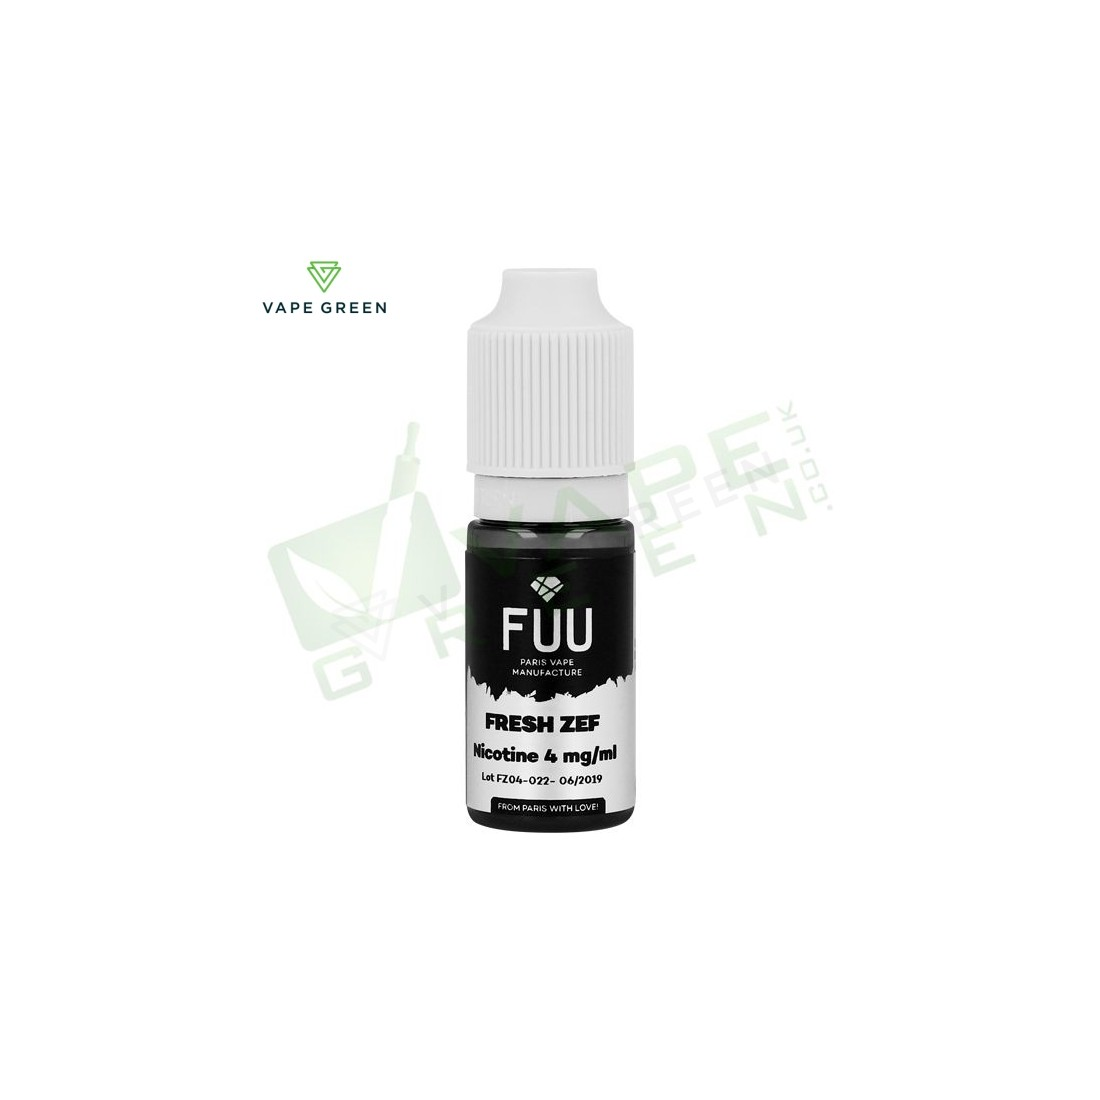 Fresh Zef eLiquid by The Fuu Original SIlver